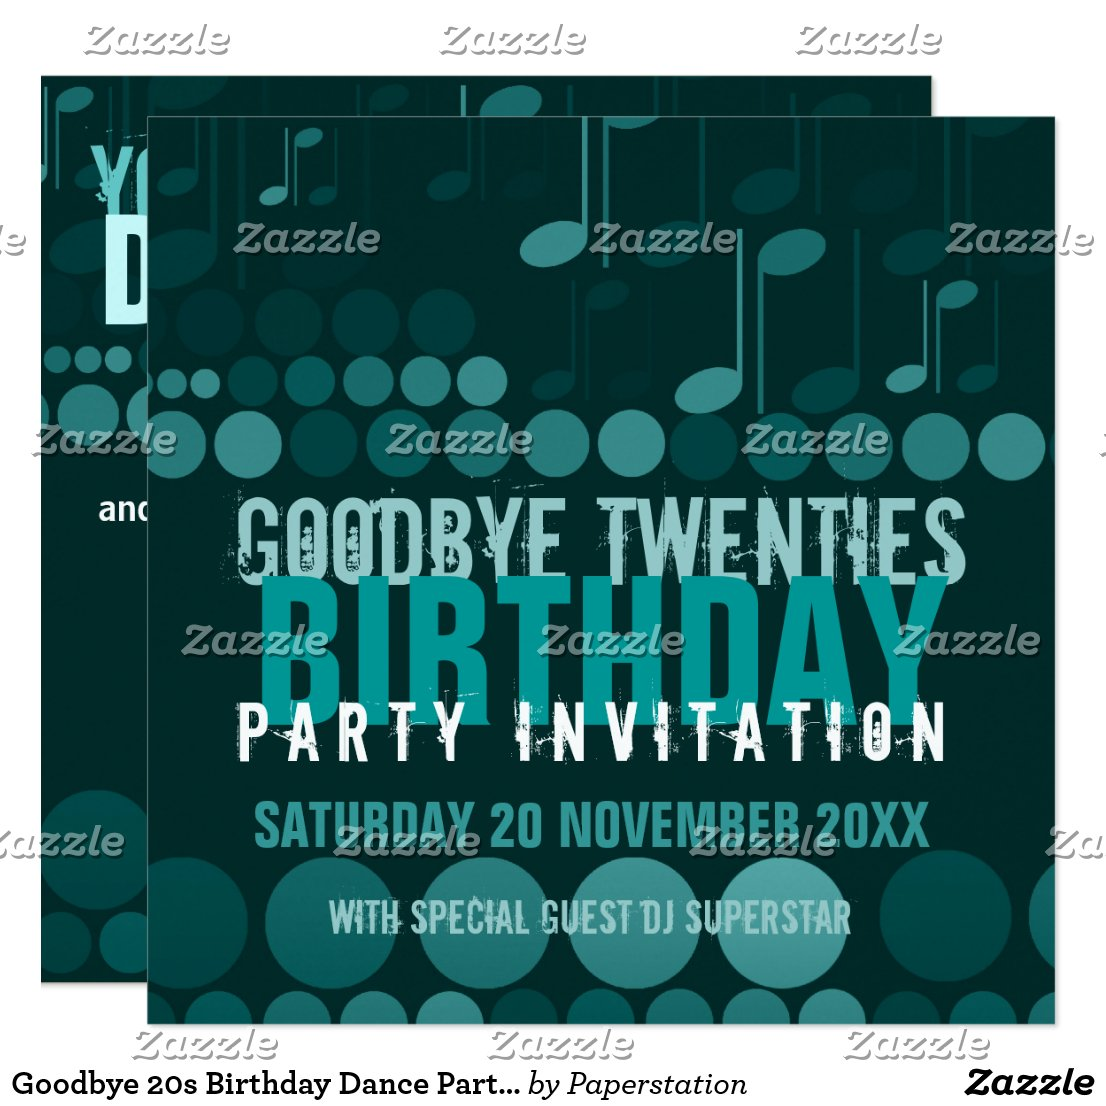 Goodbye 20s Birthday Dance Party Invitation